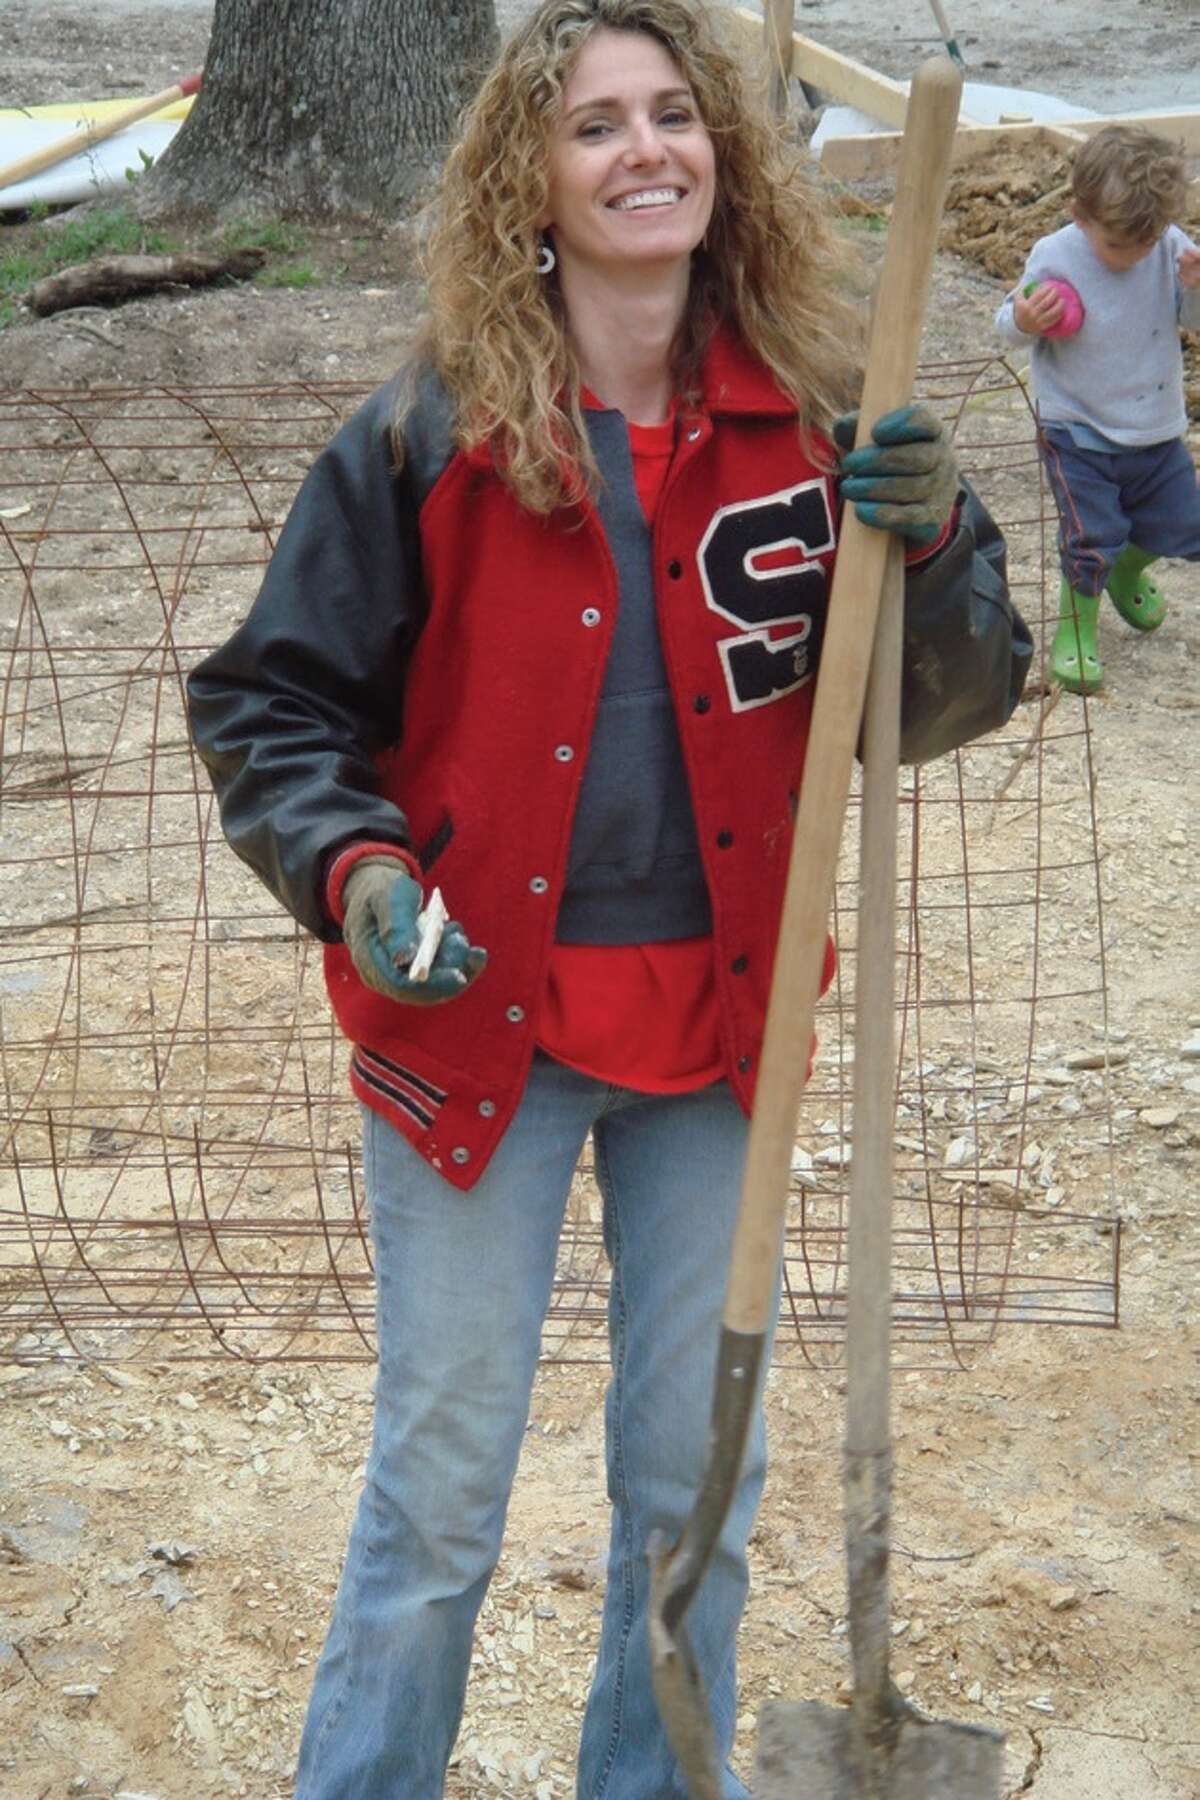 Brookins got a small loan to buy an acre of land and some building supplies. Then, using mostly YouTube how-to videos, she and her kids built their home from the ground up.